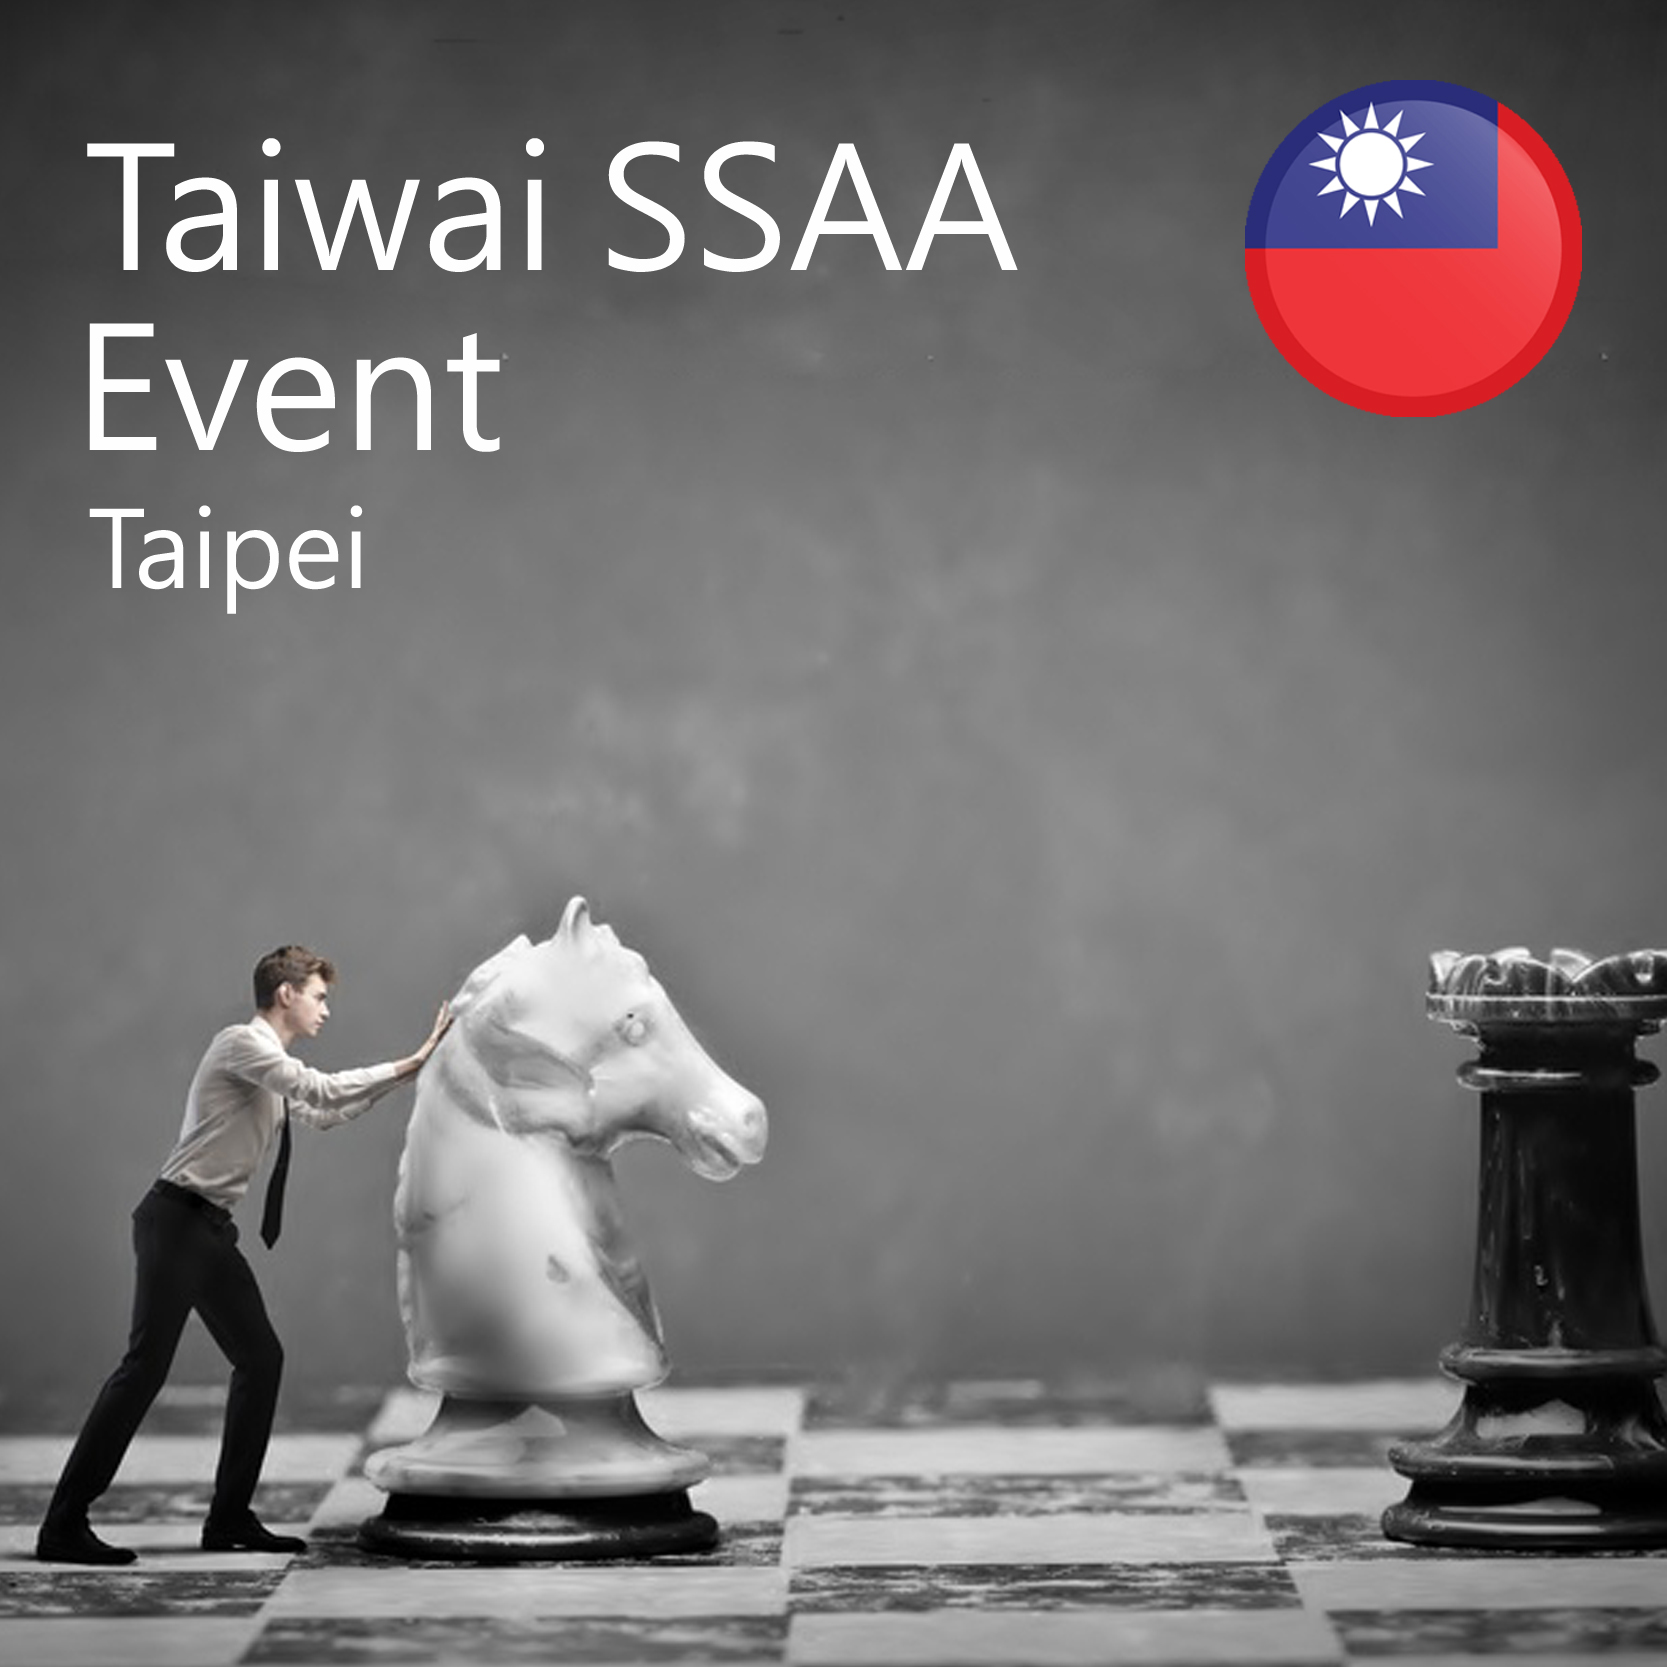 Mar 29 - Taiwan SSAA Event